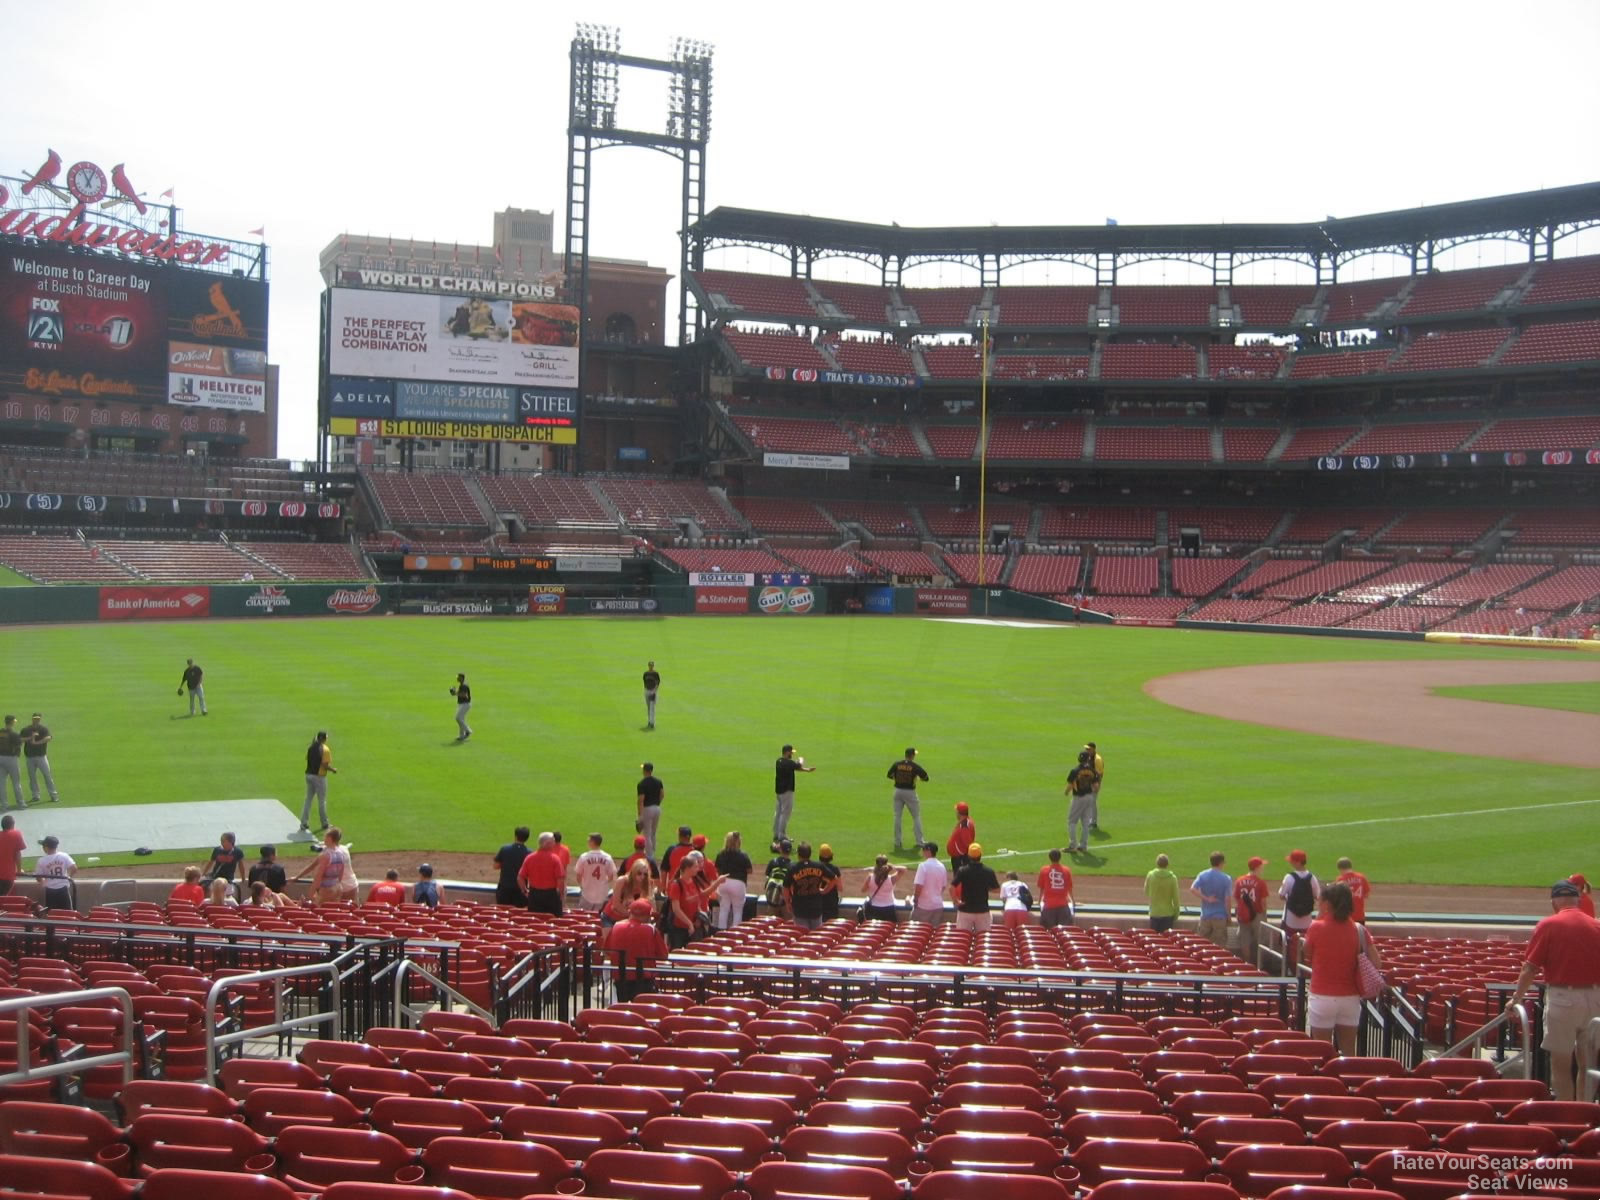 Busch Stadium Section 164 - RateYourSeats.com